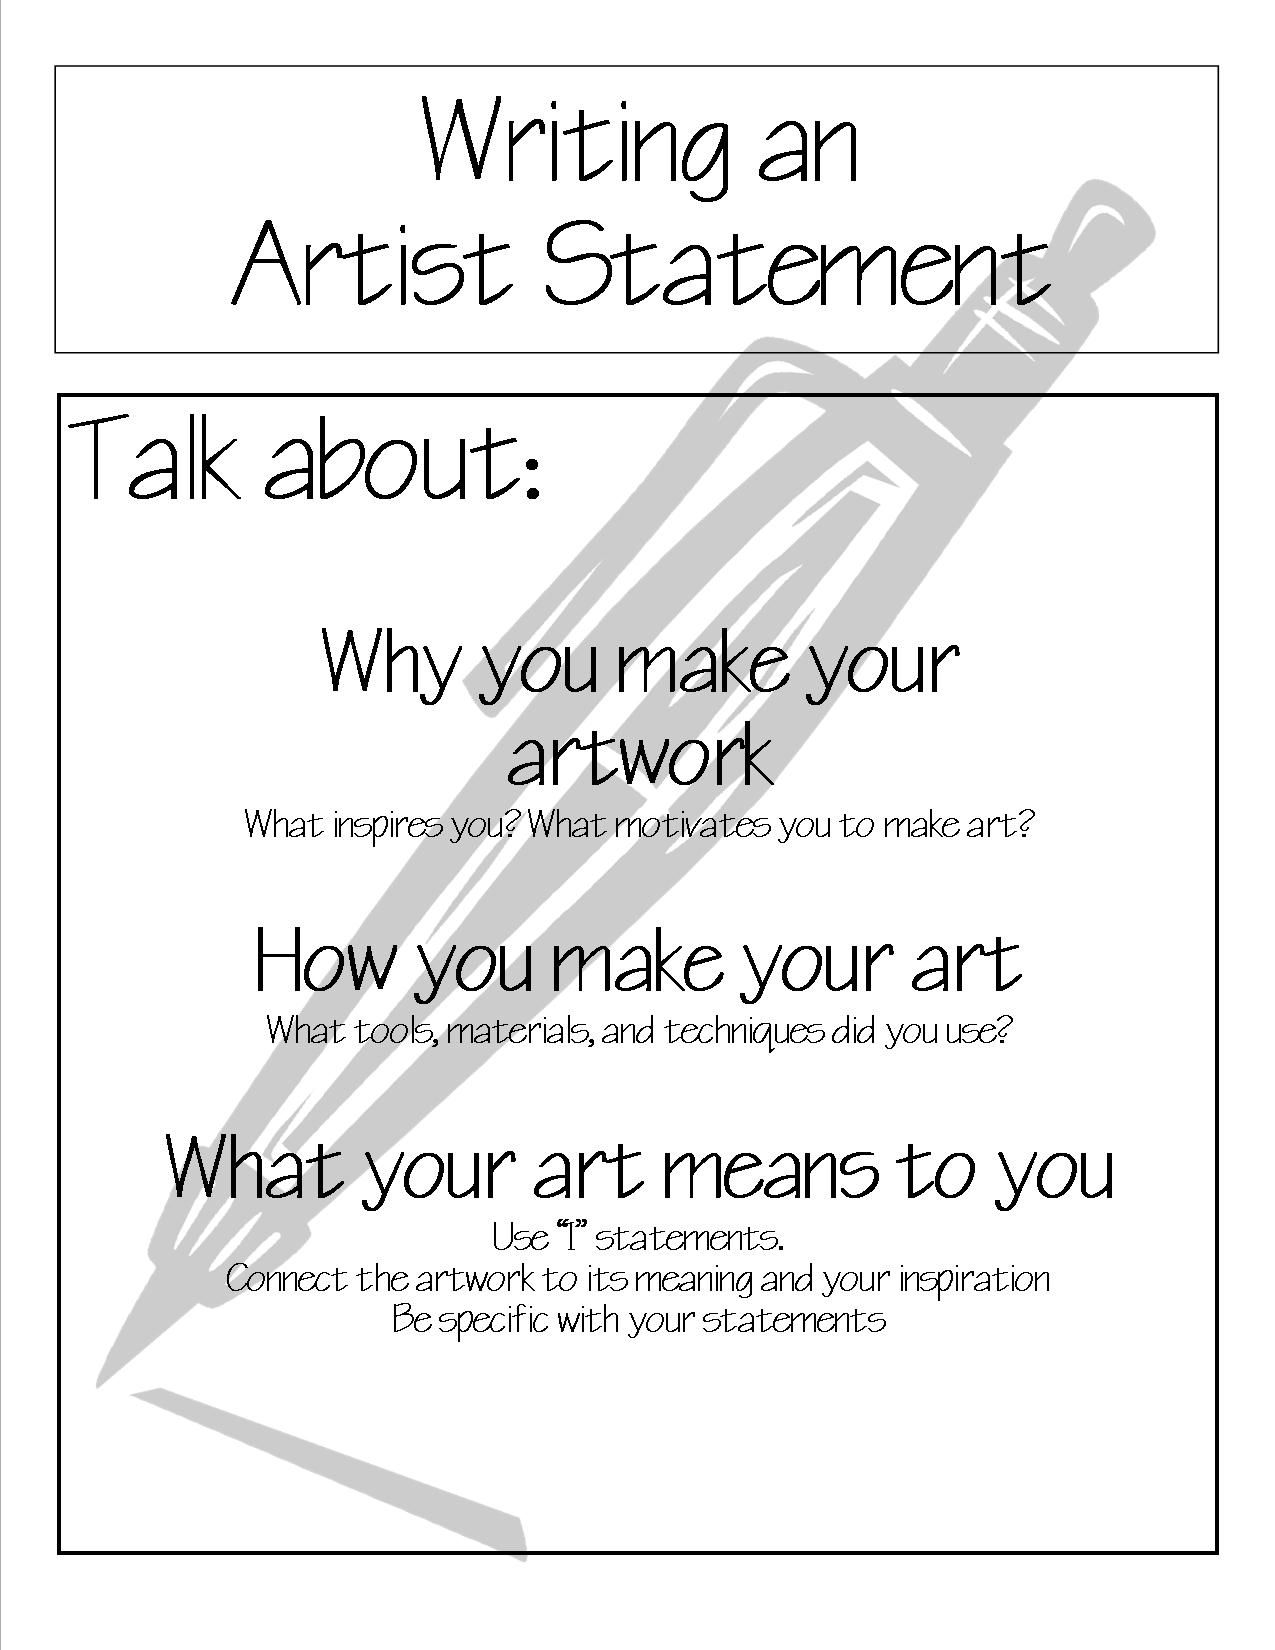 How To Write An Artist Statement: Tips From The Art Experts